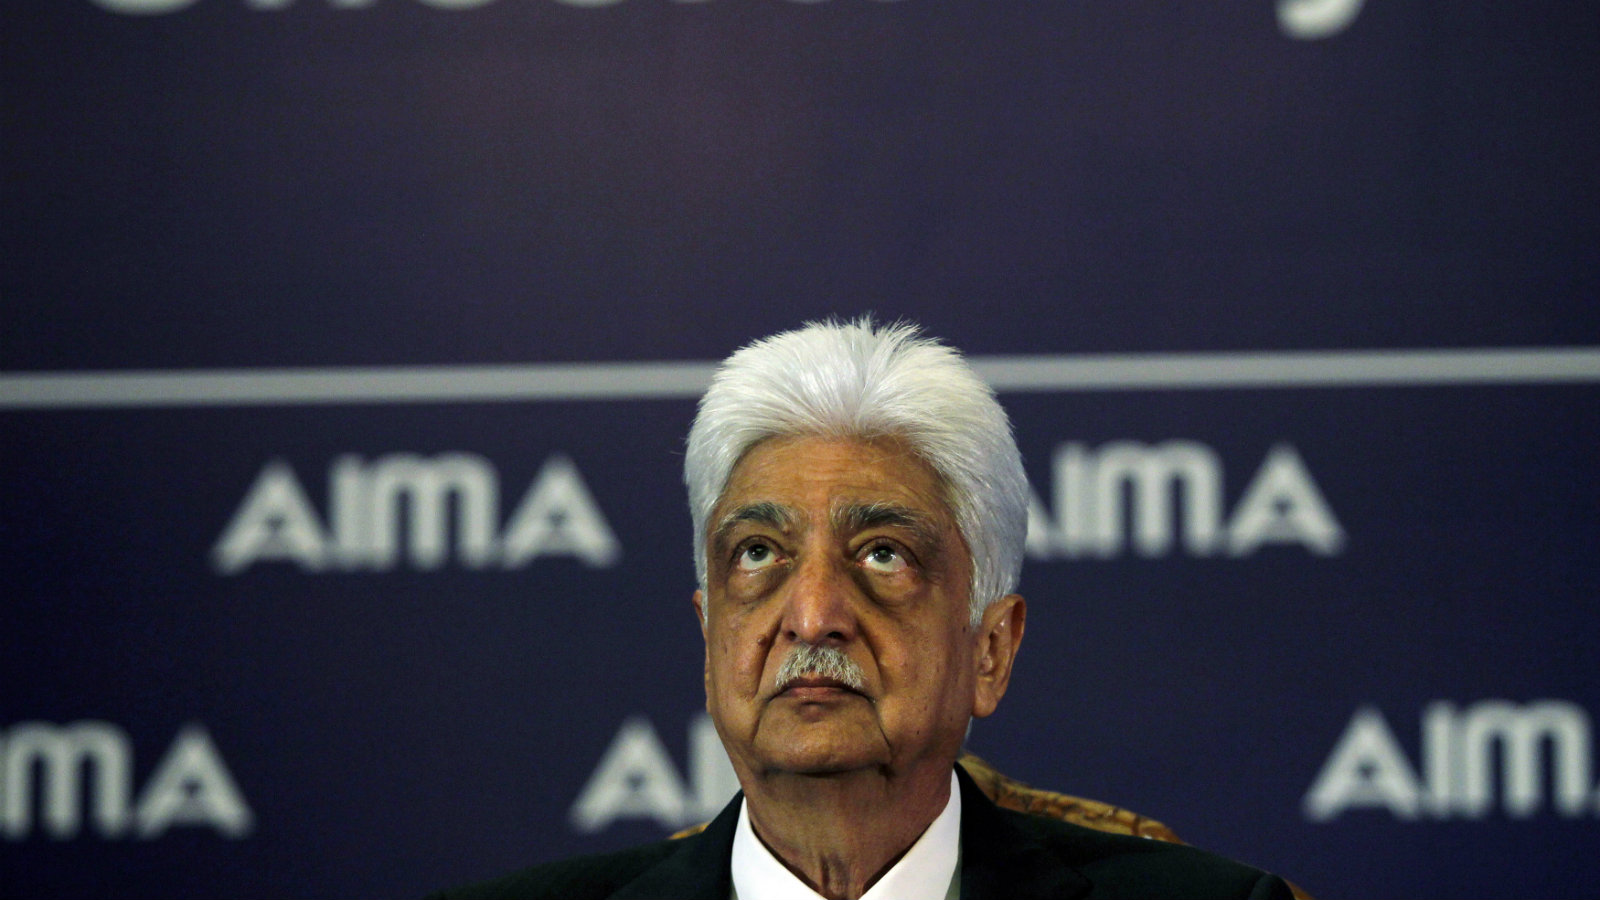 Wipro Chairman Azim Premji attends the 40th National Management Convention organised by All India Management Association in New Delhi September 26, 2013.